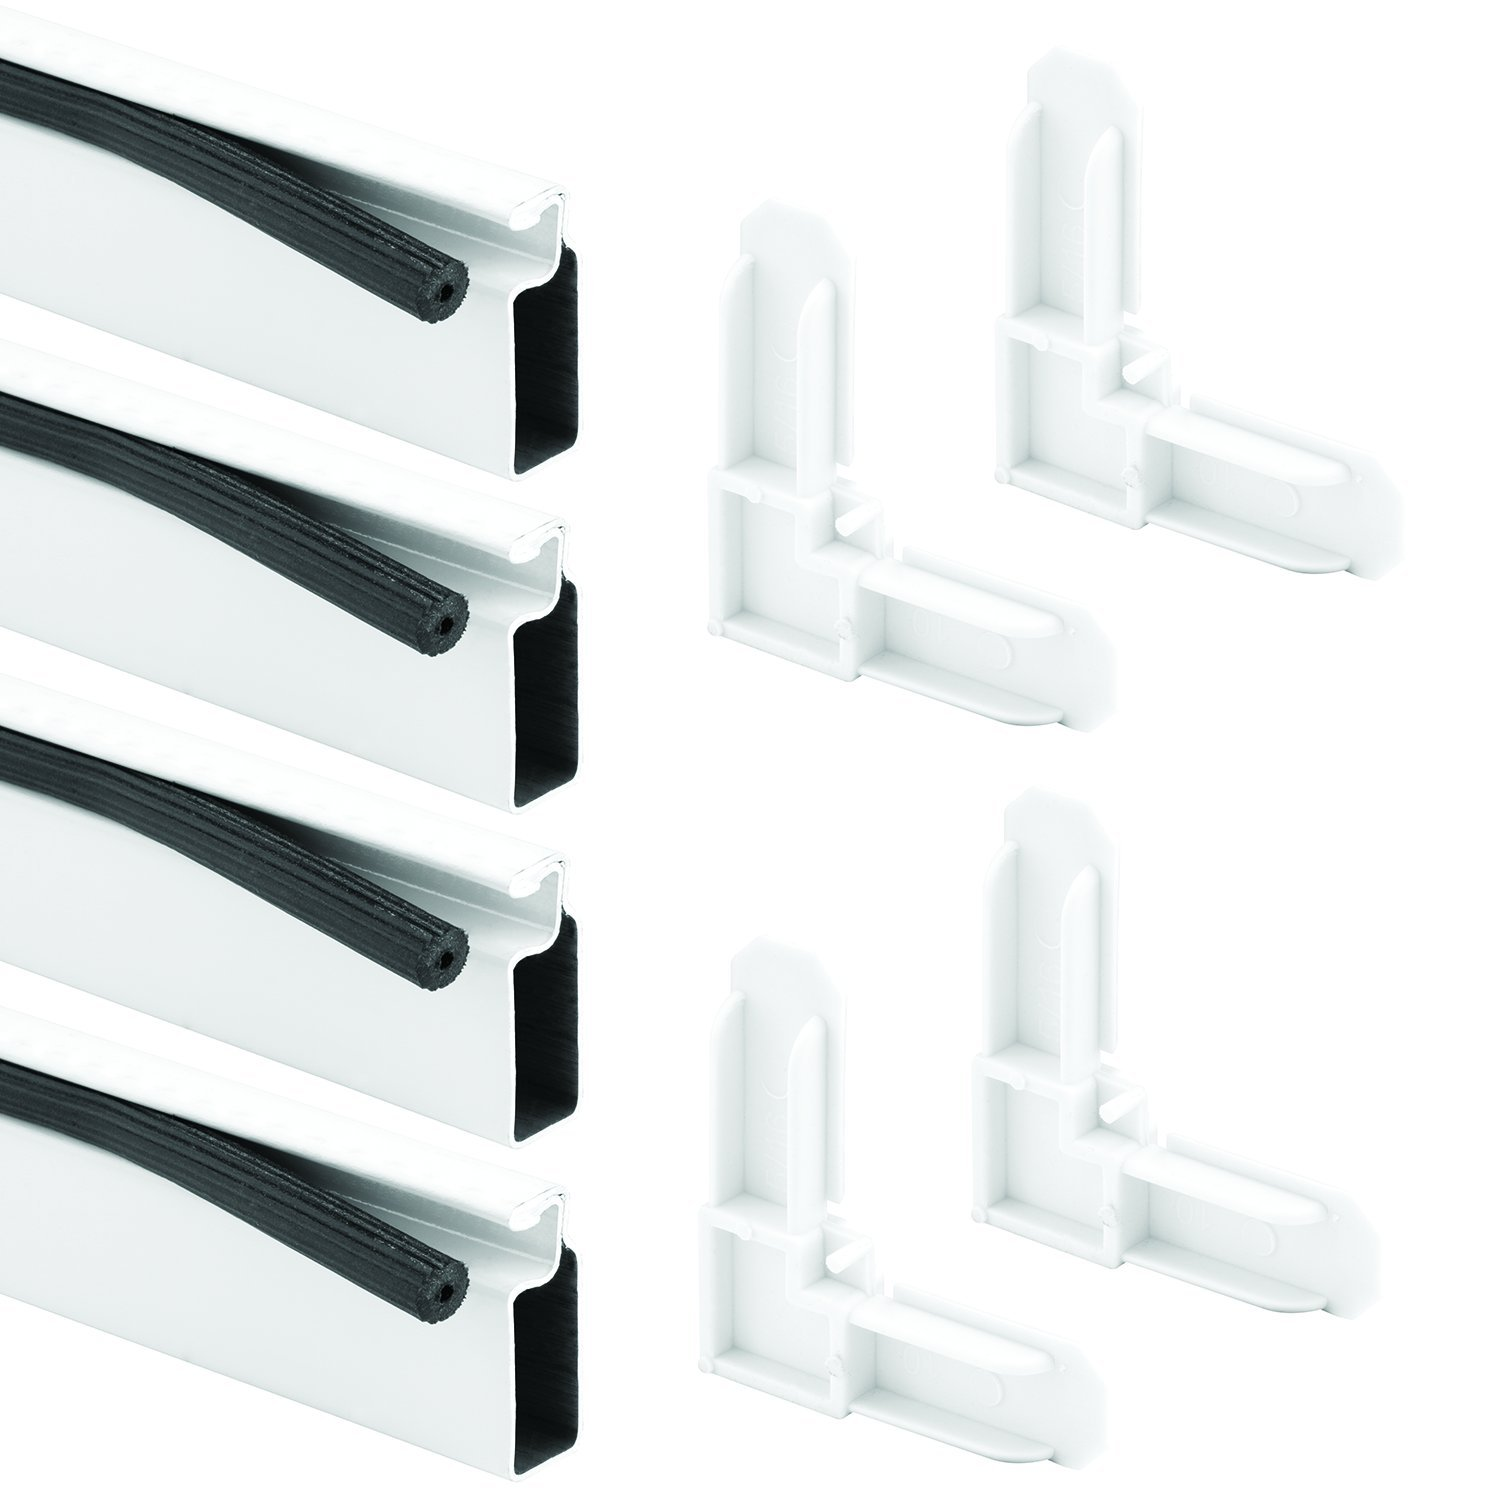 Prime-Line Products PL 7823 Screen Frame Kit, 3/8 in. x 3/4 in. x 60 in. x 60 in., Aluminum Frame, White